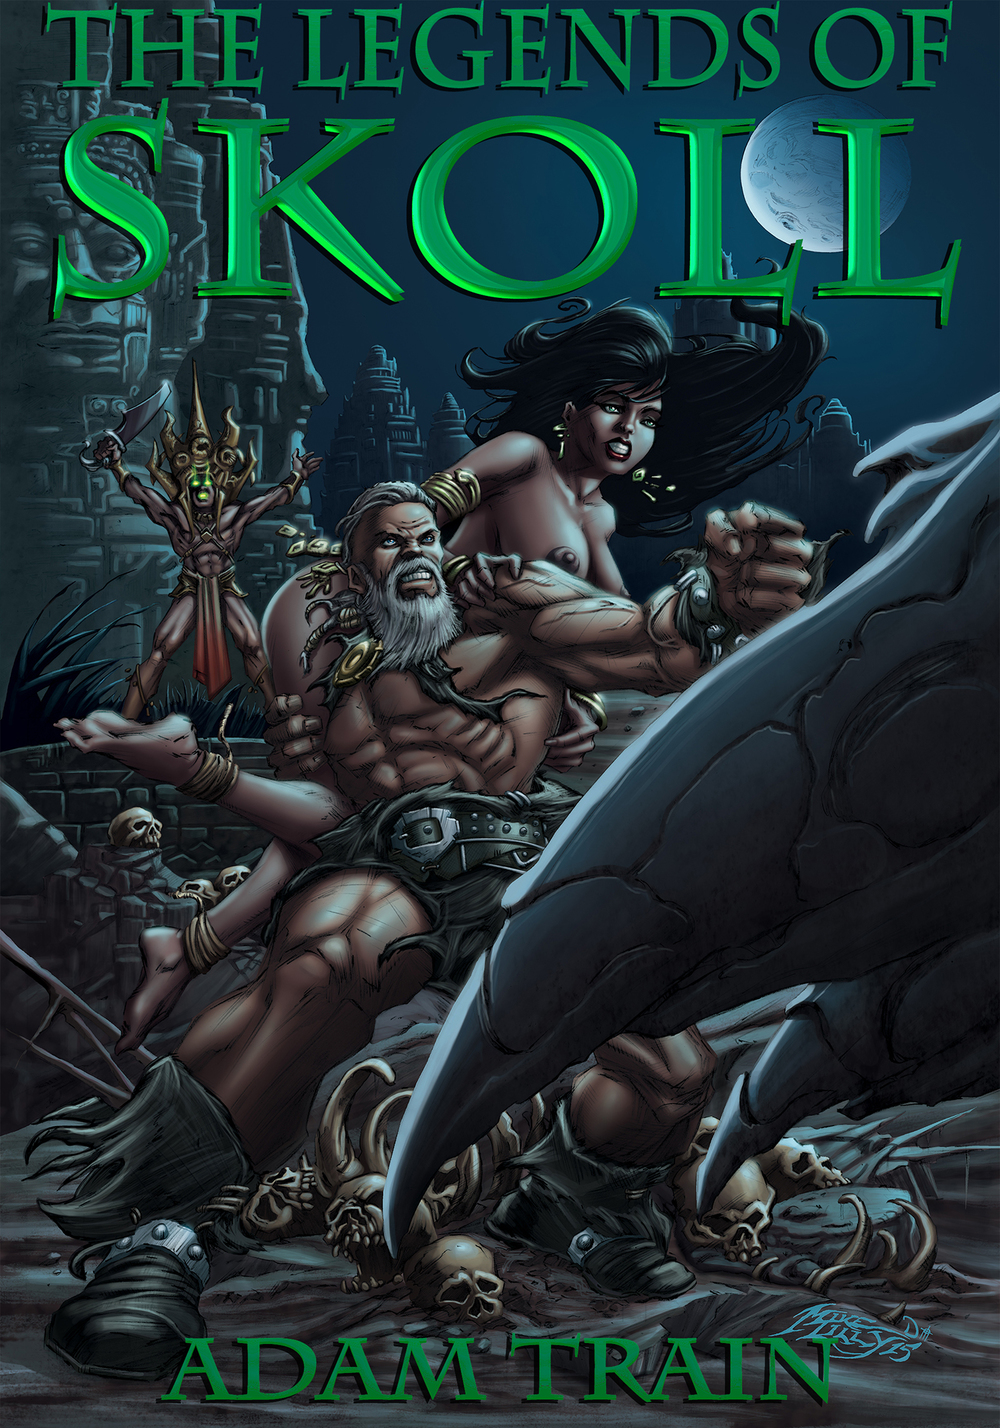 THE SKY METAL Sköll and Bhālū venture to an ancient Khmer temple hidden in the steamy jungles of the south. There they face off against a demonic cult that guards the temple's black heart; the famed sky metal.